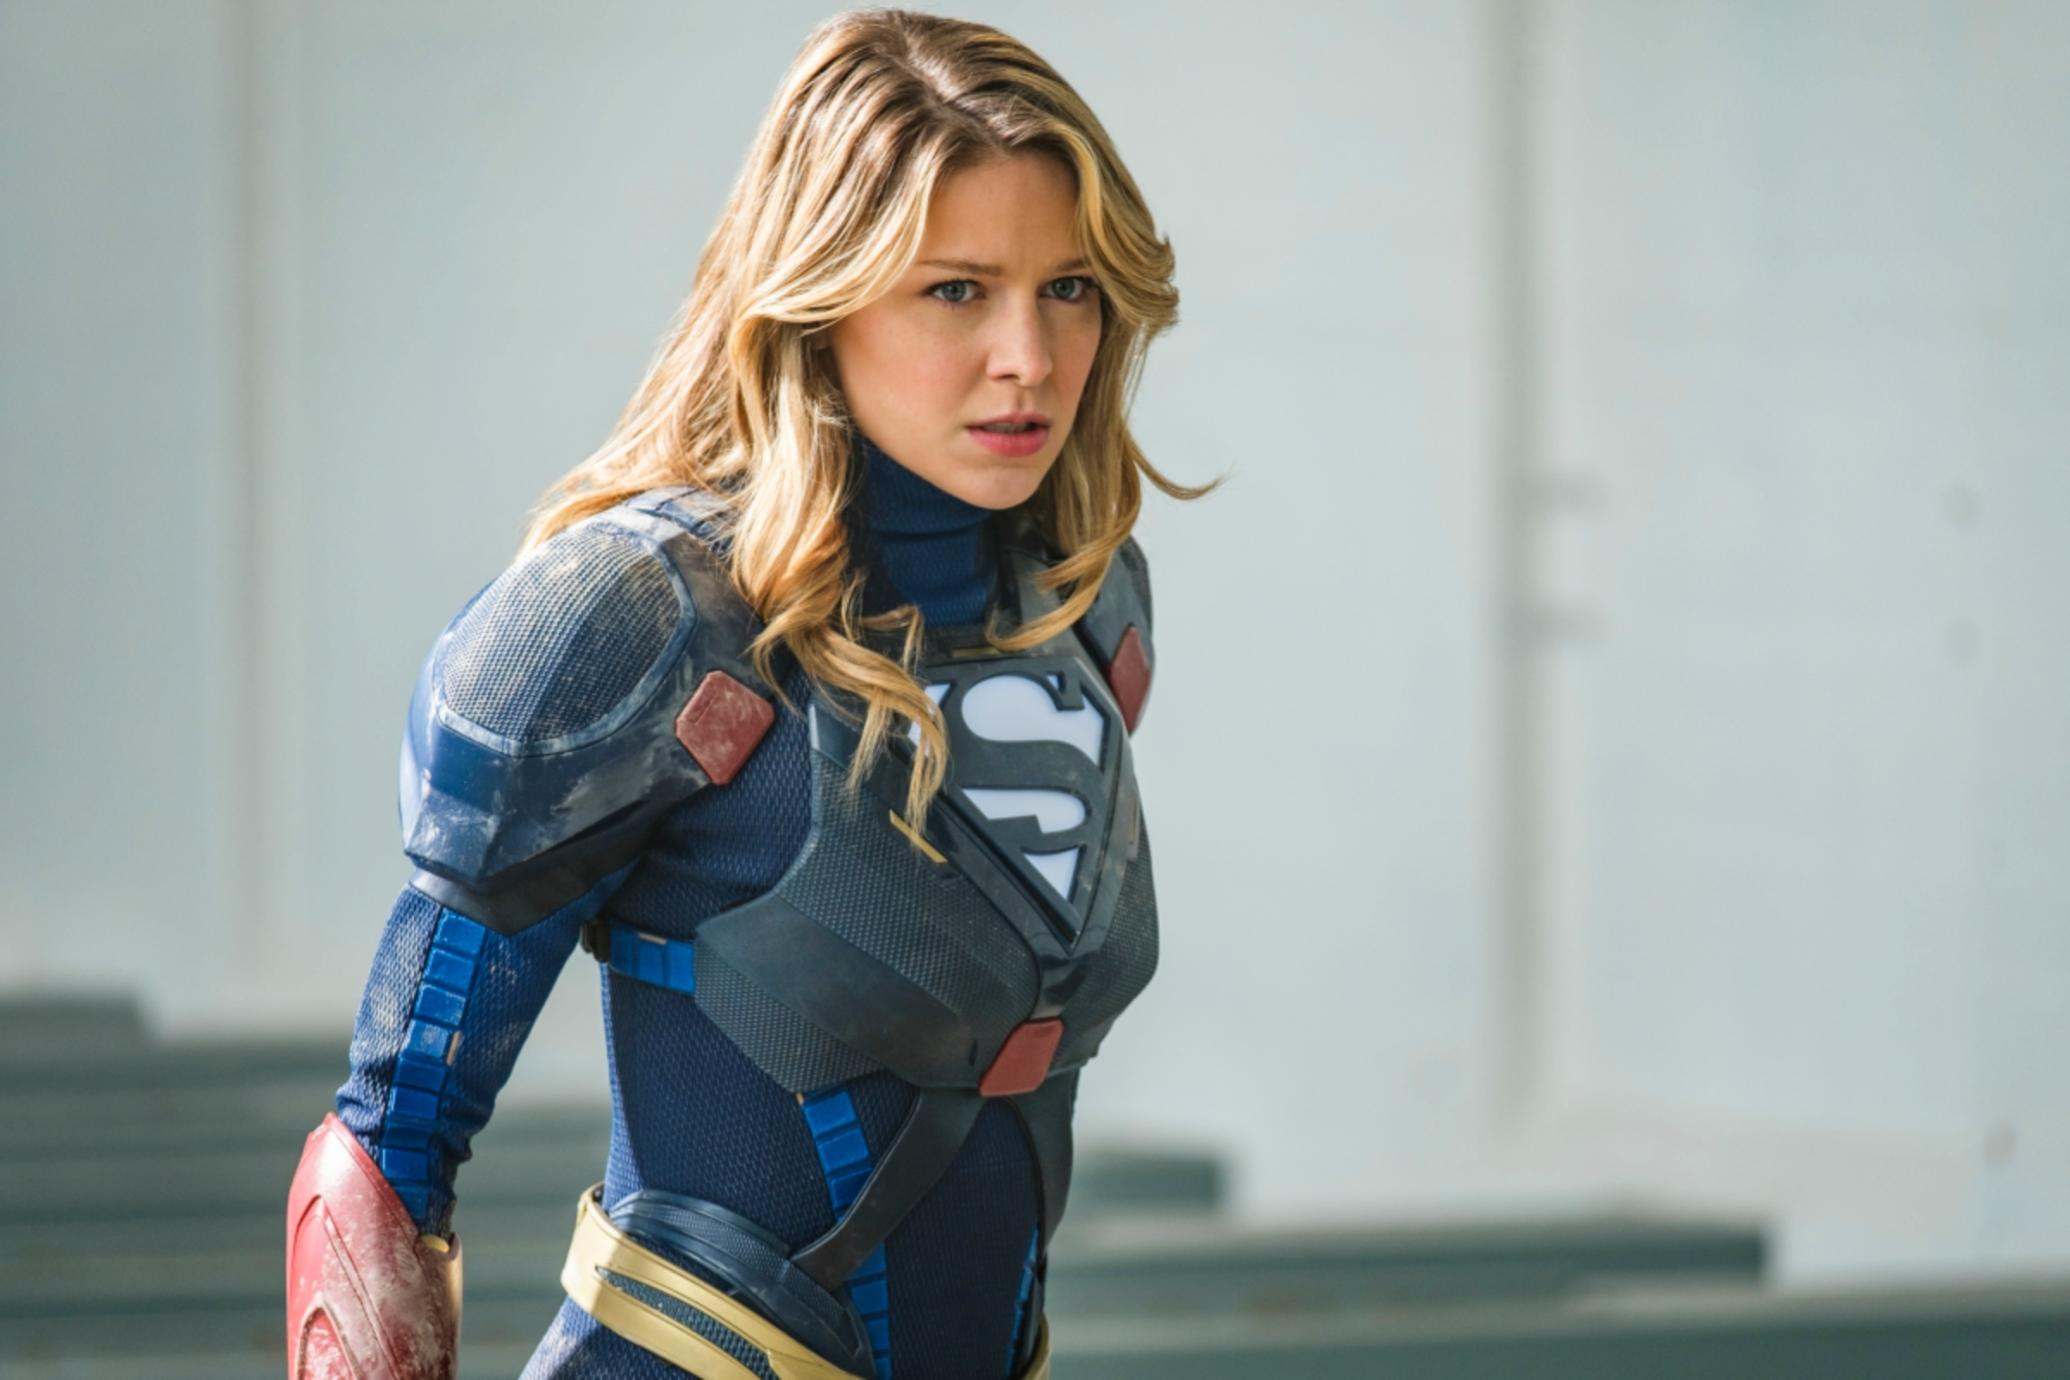 Supergirl Season 5: What changes are there in the fifth season of Supergirl